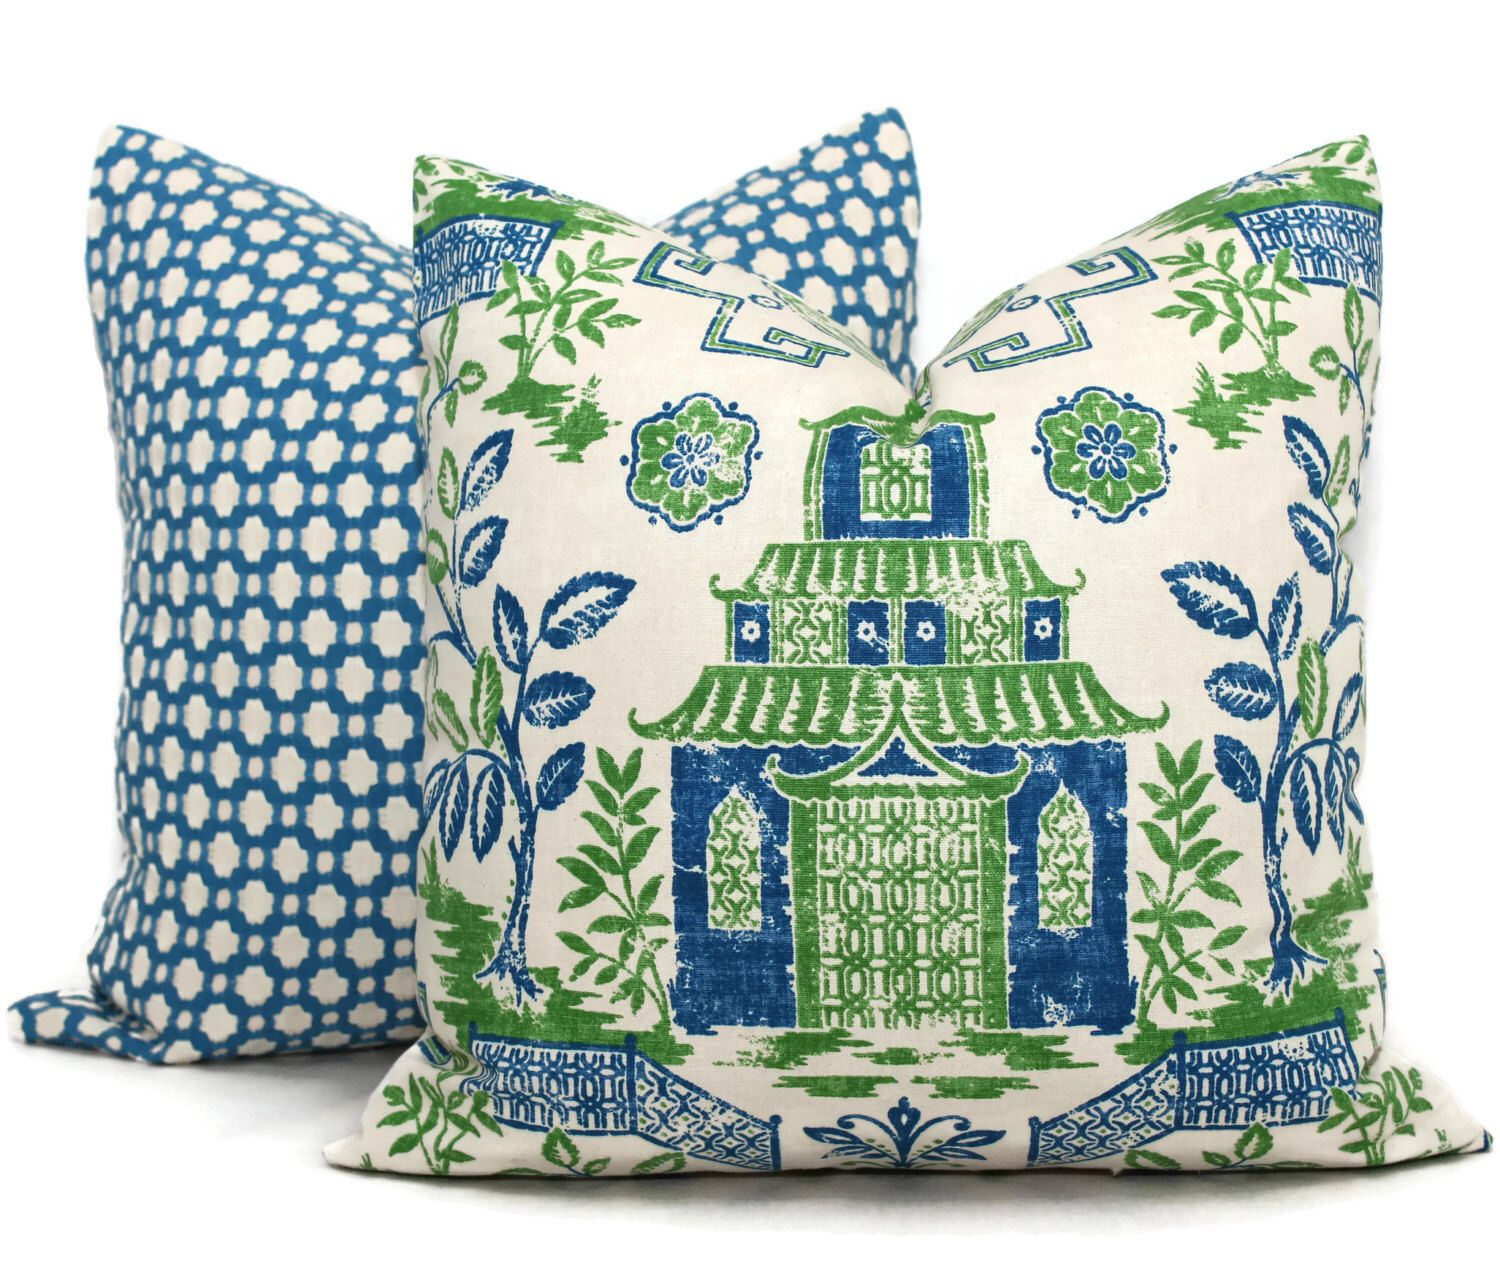 Blue and green teahouse pagoda decorative pillow covers toss pillow